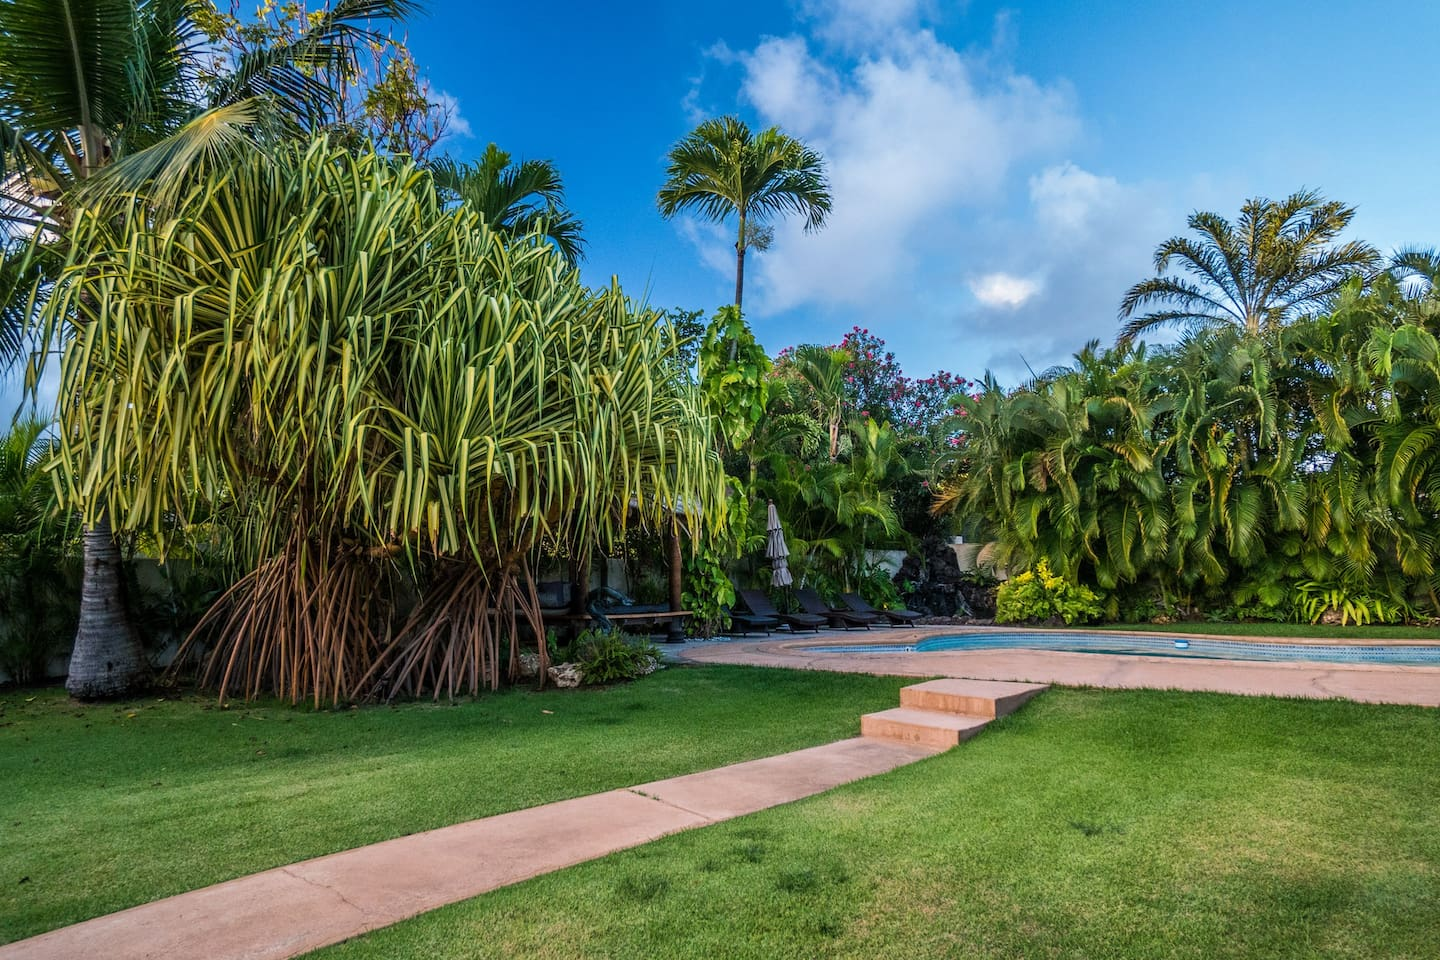 Photos do no justice of the pool area and lush, breathtaking yard. You must see it for yourself!